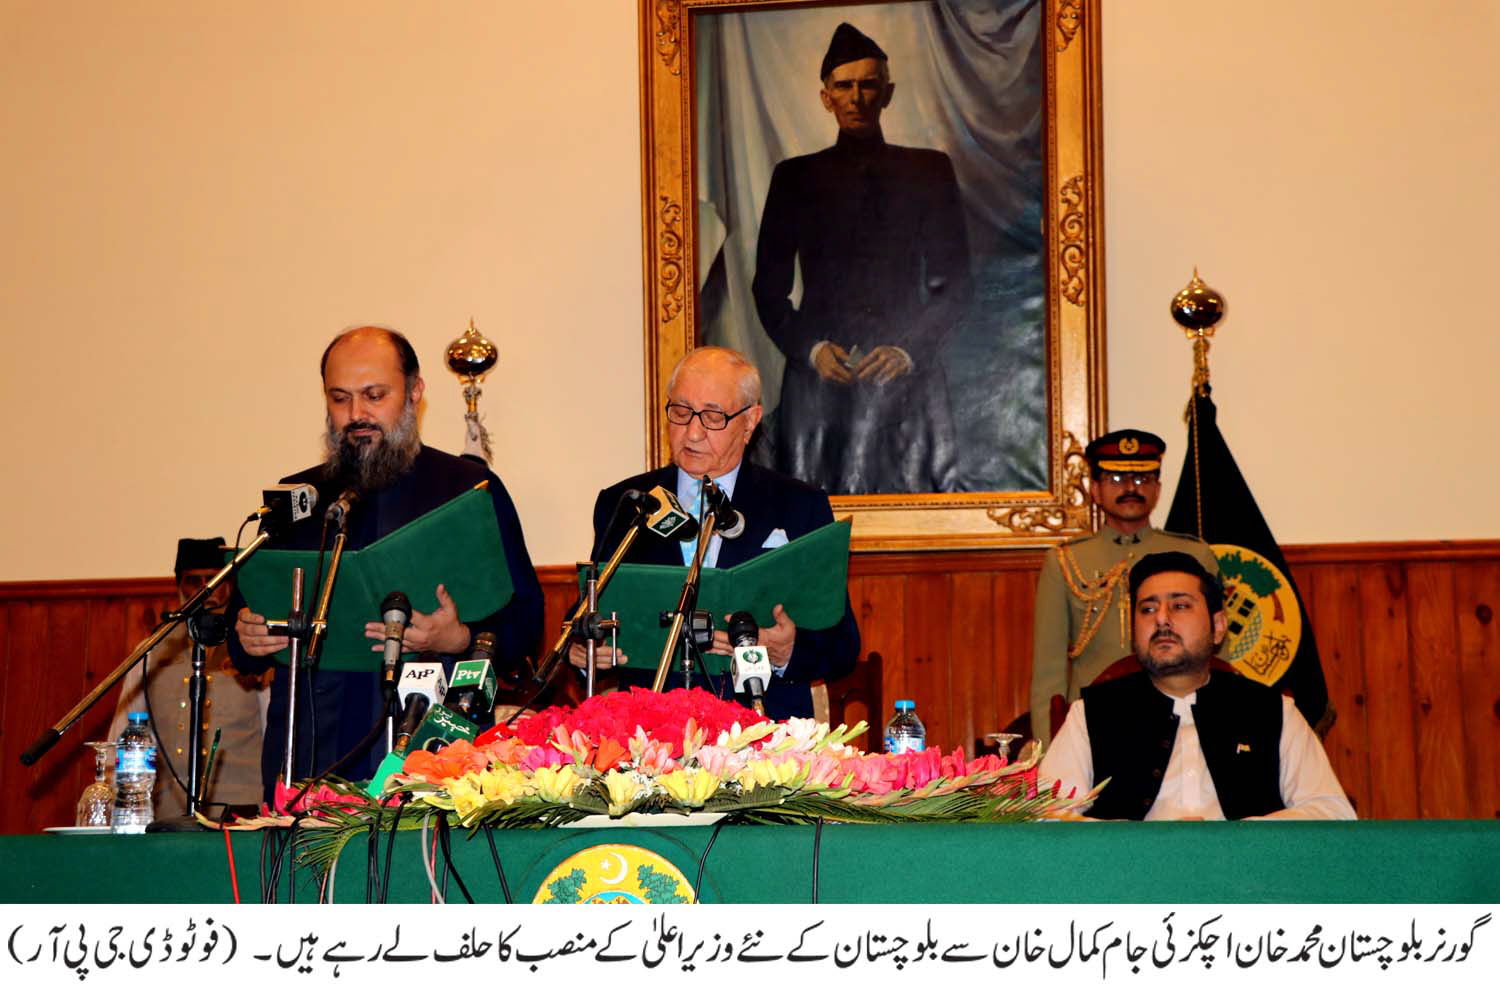 Governor Muhammad Khan Achakzai administers oath to newly-elected Chief Minister of Balochistan Jam Kamal Khan at the Governor House in Quetta. PHOTO: EXPRESS